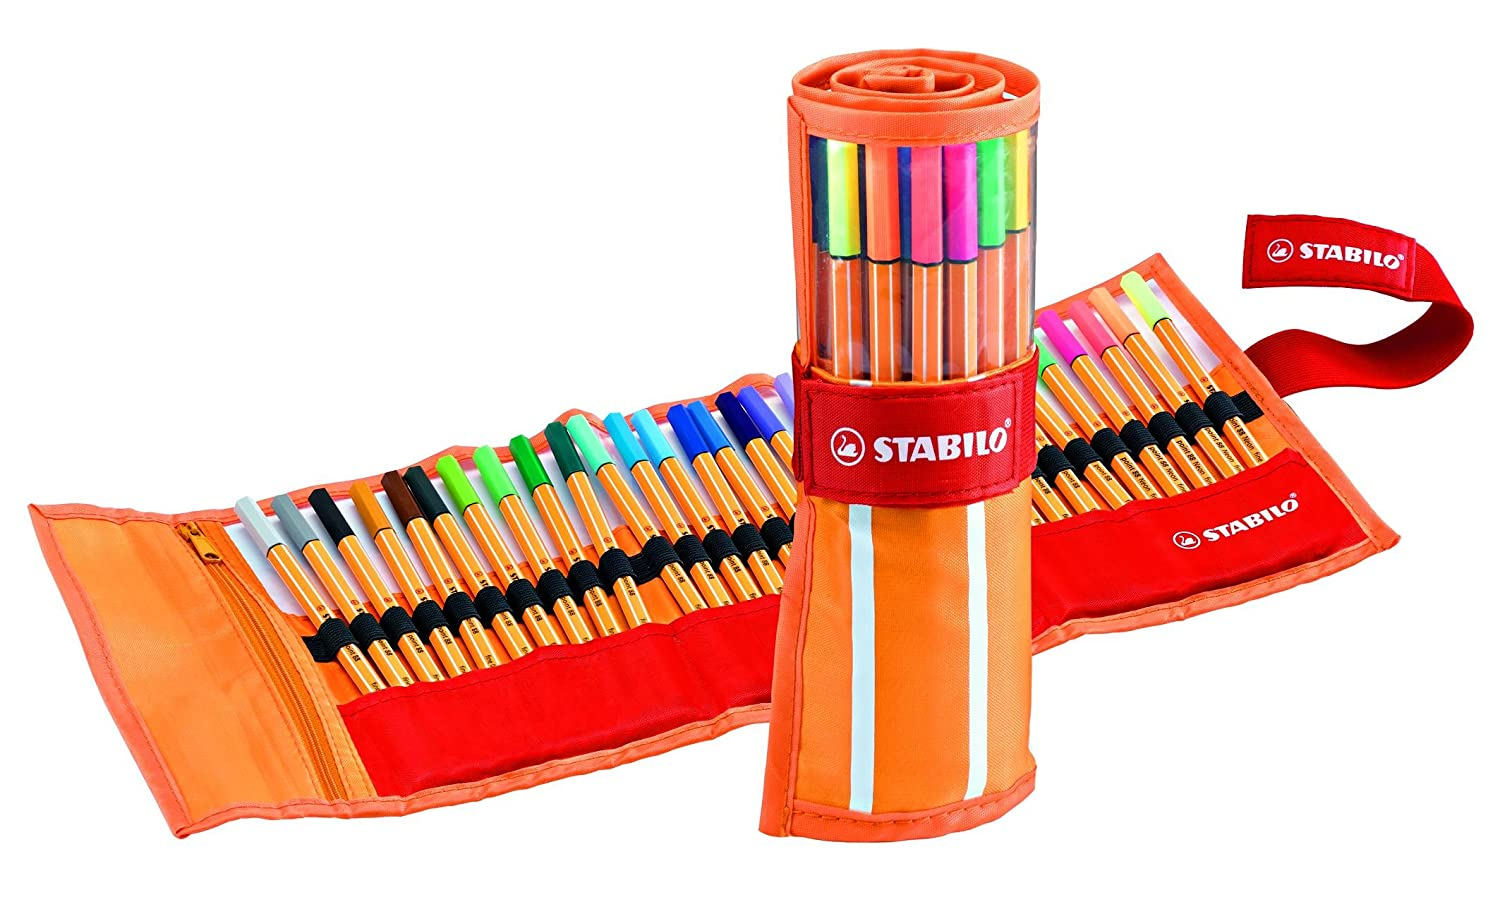 STABILO point 88 Fineliner - Rollerset of 30 Assorted Colours, -25 standard and 5 Neon 8830-2